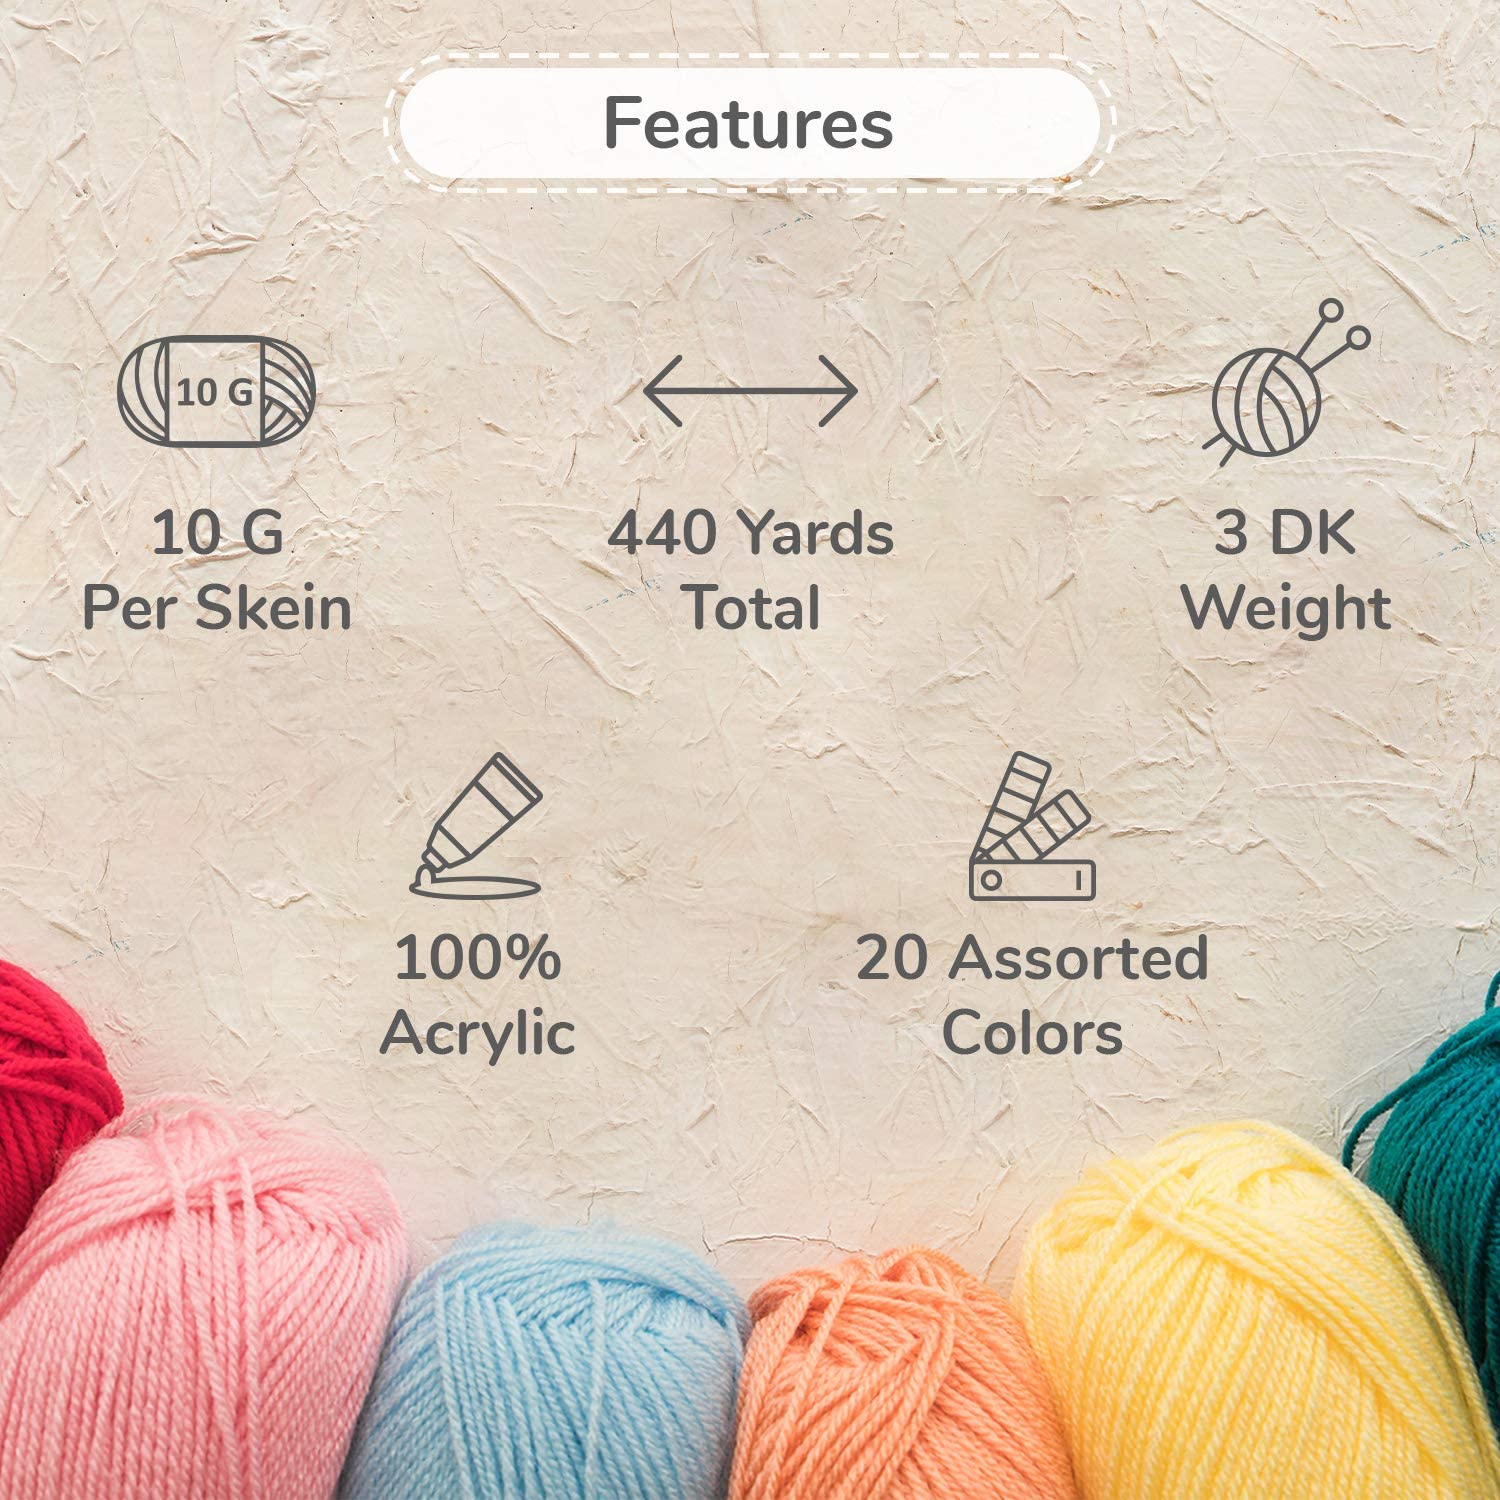 TYH Supplies 20 Skeins Bonbons Yarn Assorted Colors 100/% Acrylic by TYH Supplies